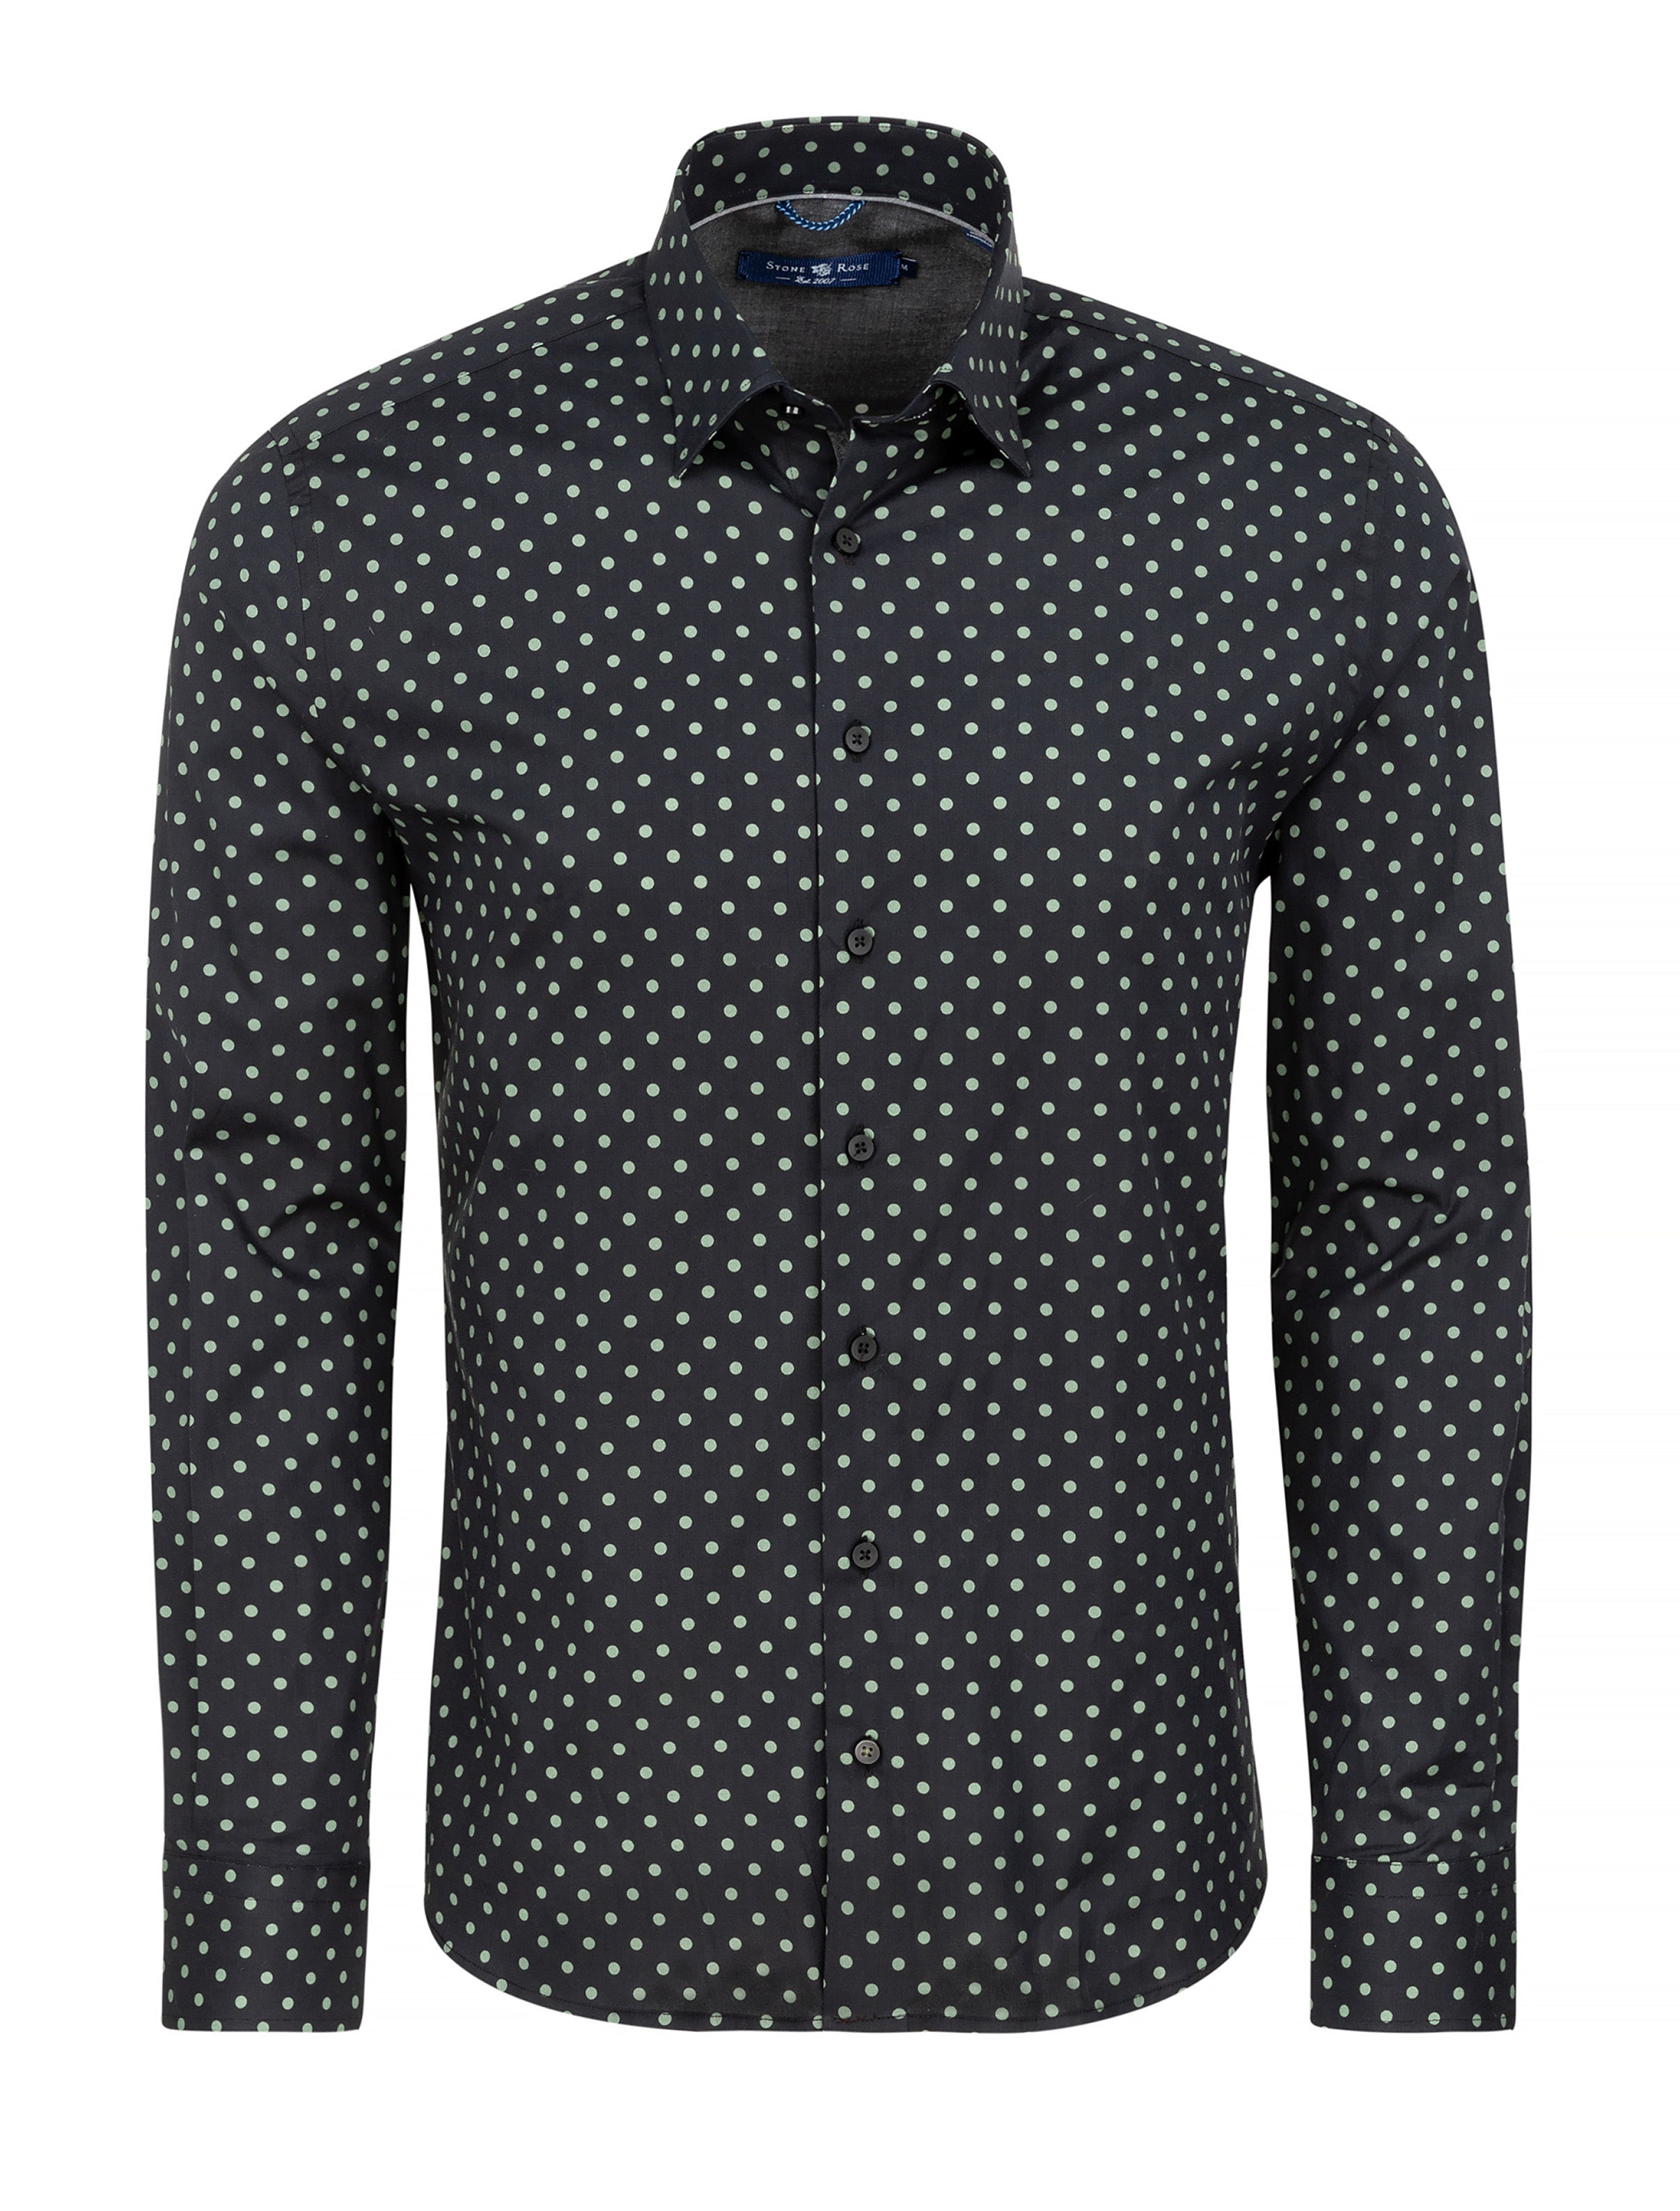 Black Polka Dot Print Long Sleeve Shirt-Stone Rose